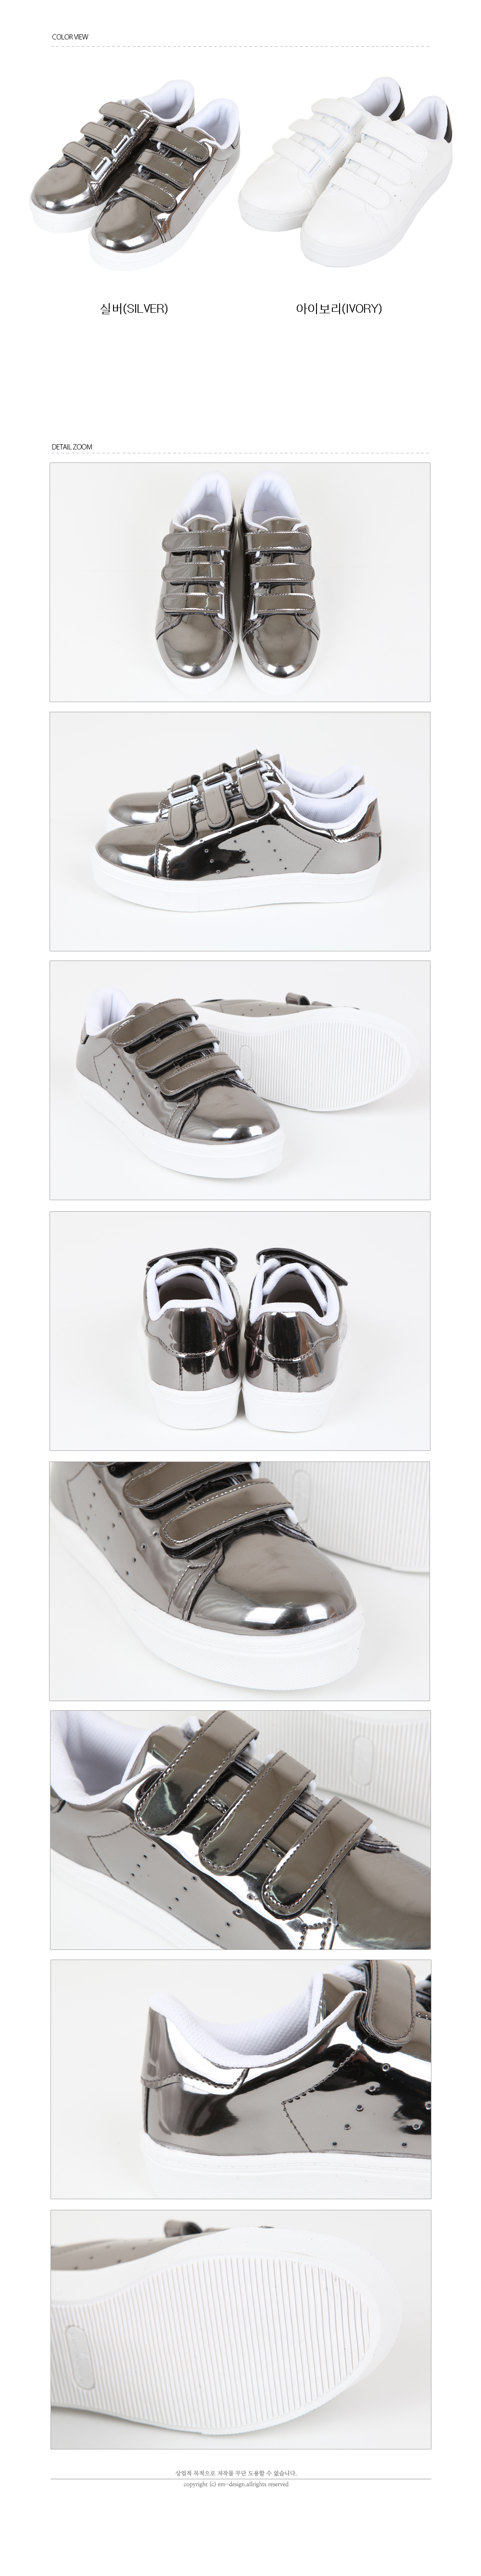 Rounded velcro sneakers